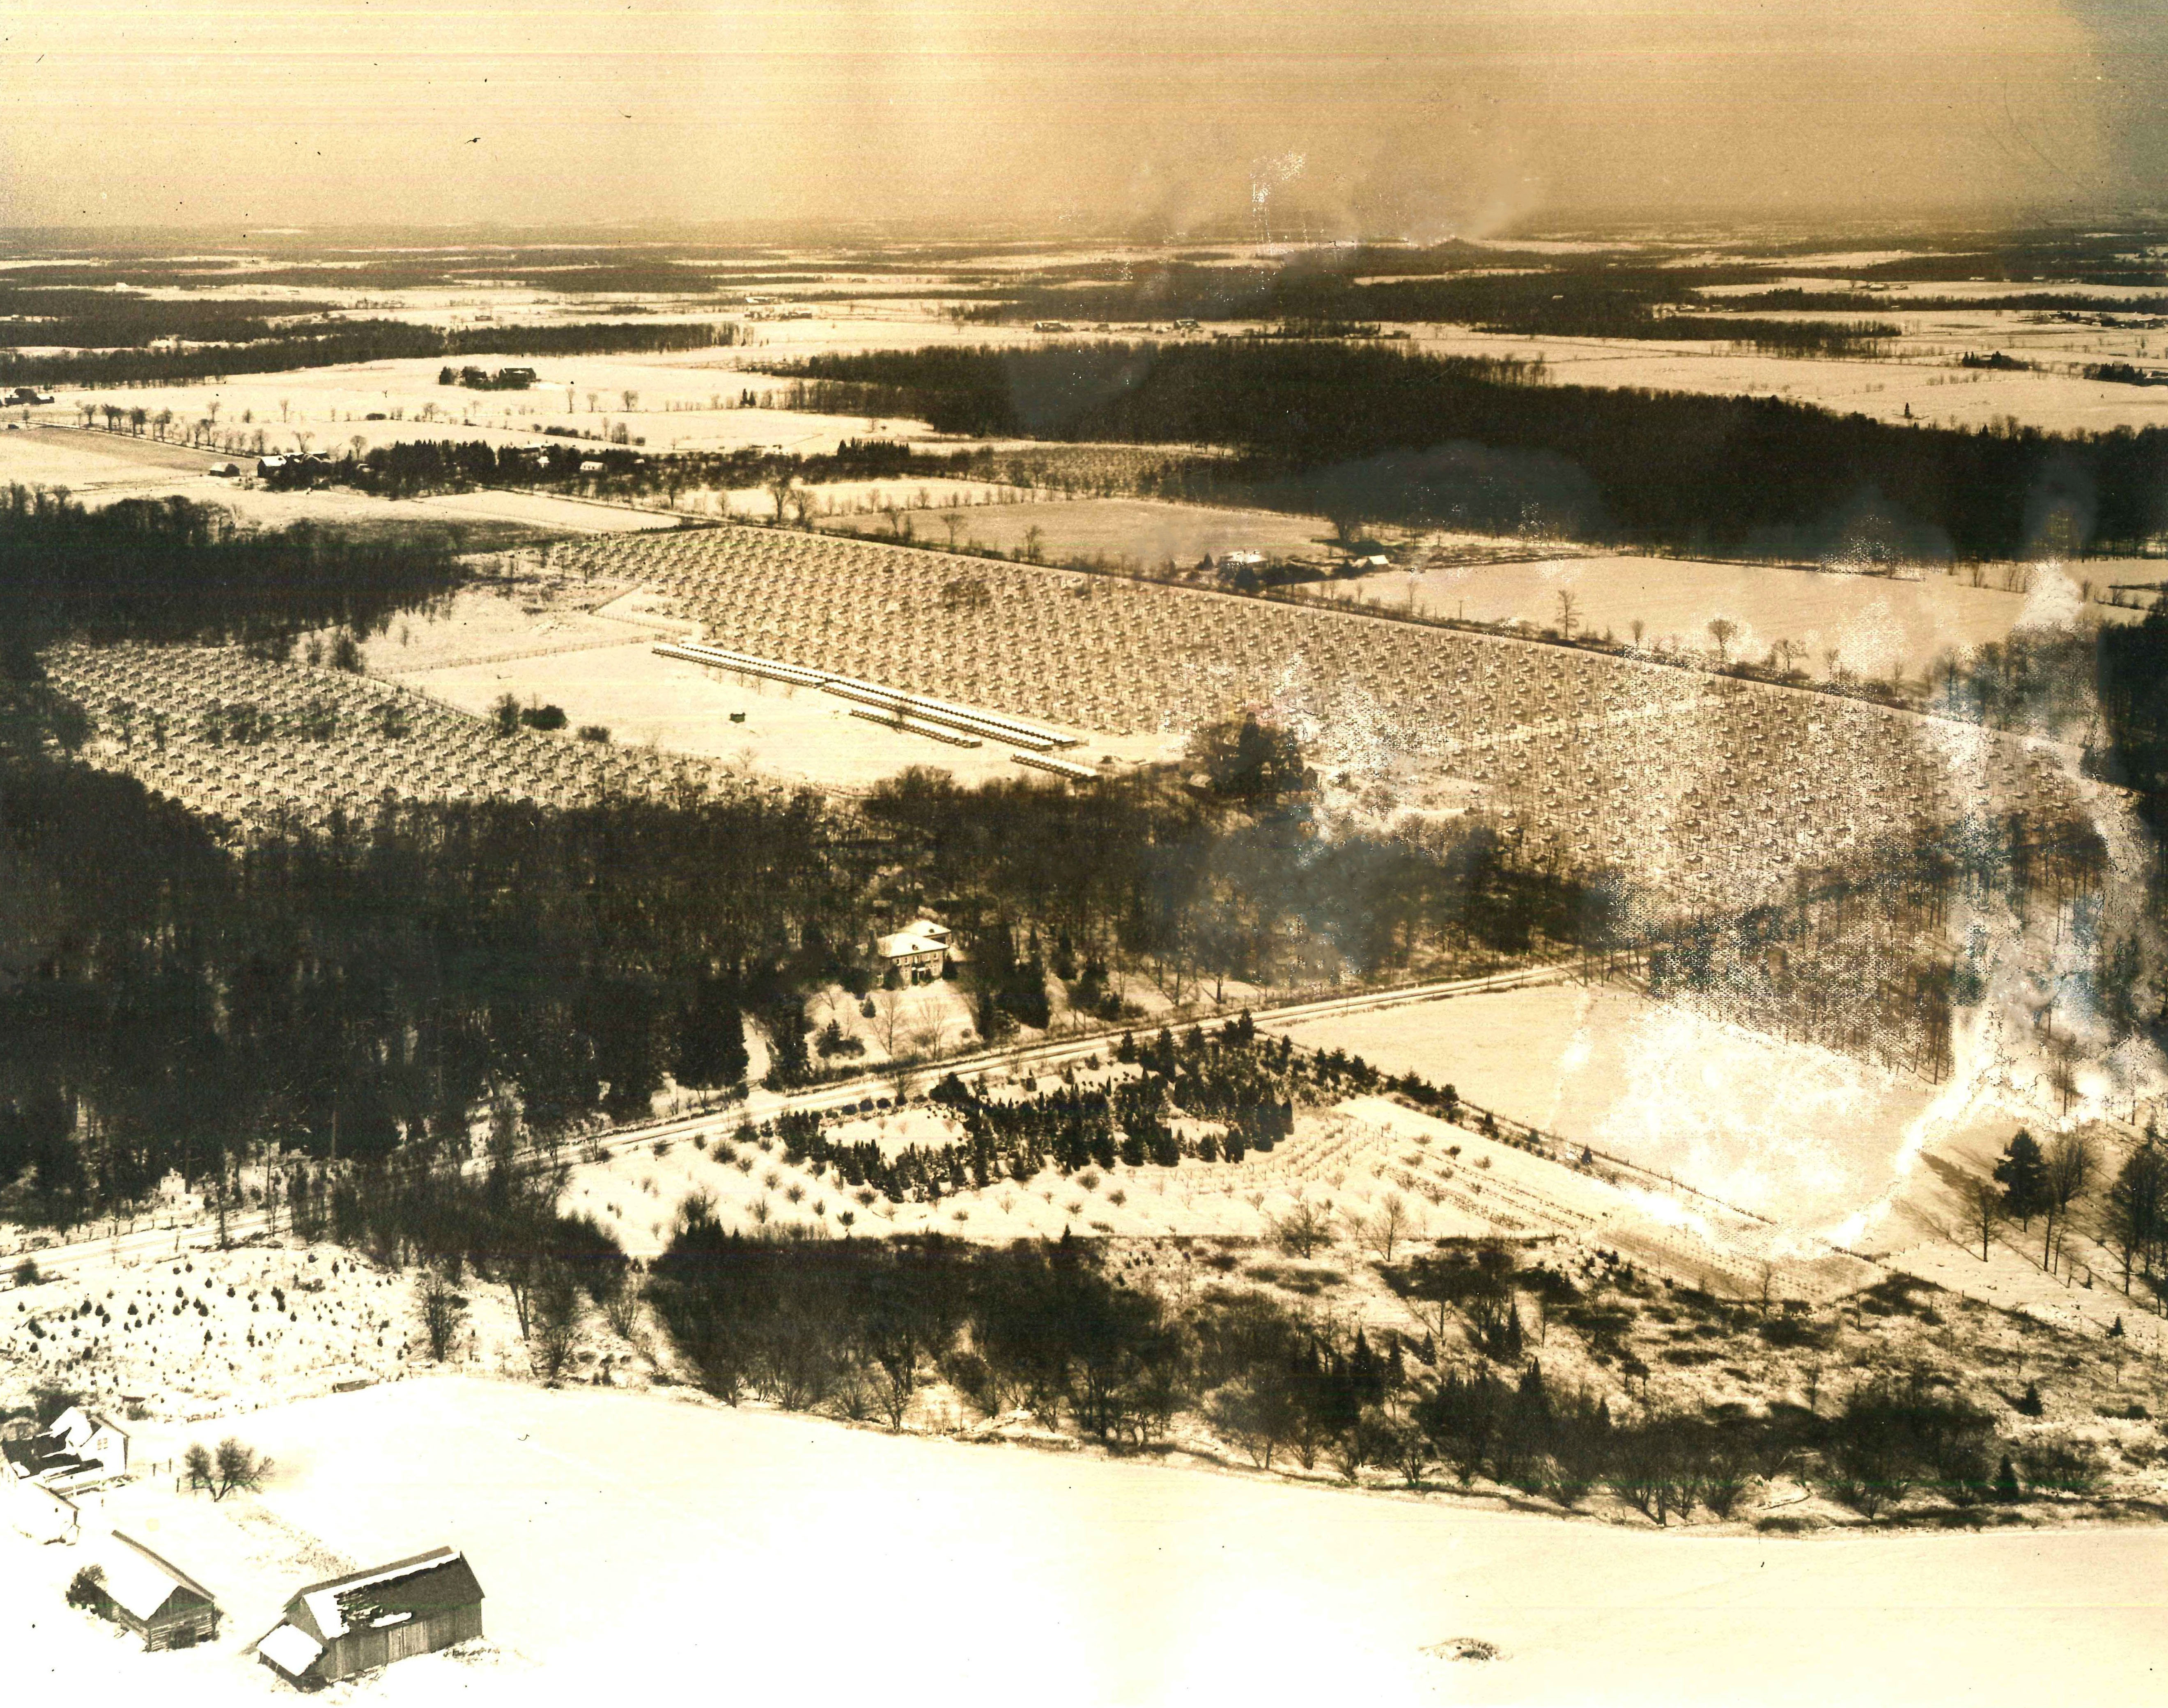 An aerial view of the Fromm fur and ginseng farm in Hamburg, Wisconsin. Date unknown. Photograph courtesy of the Marathon County Historical Society.